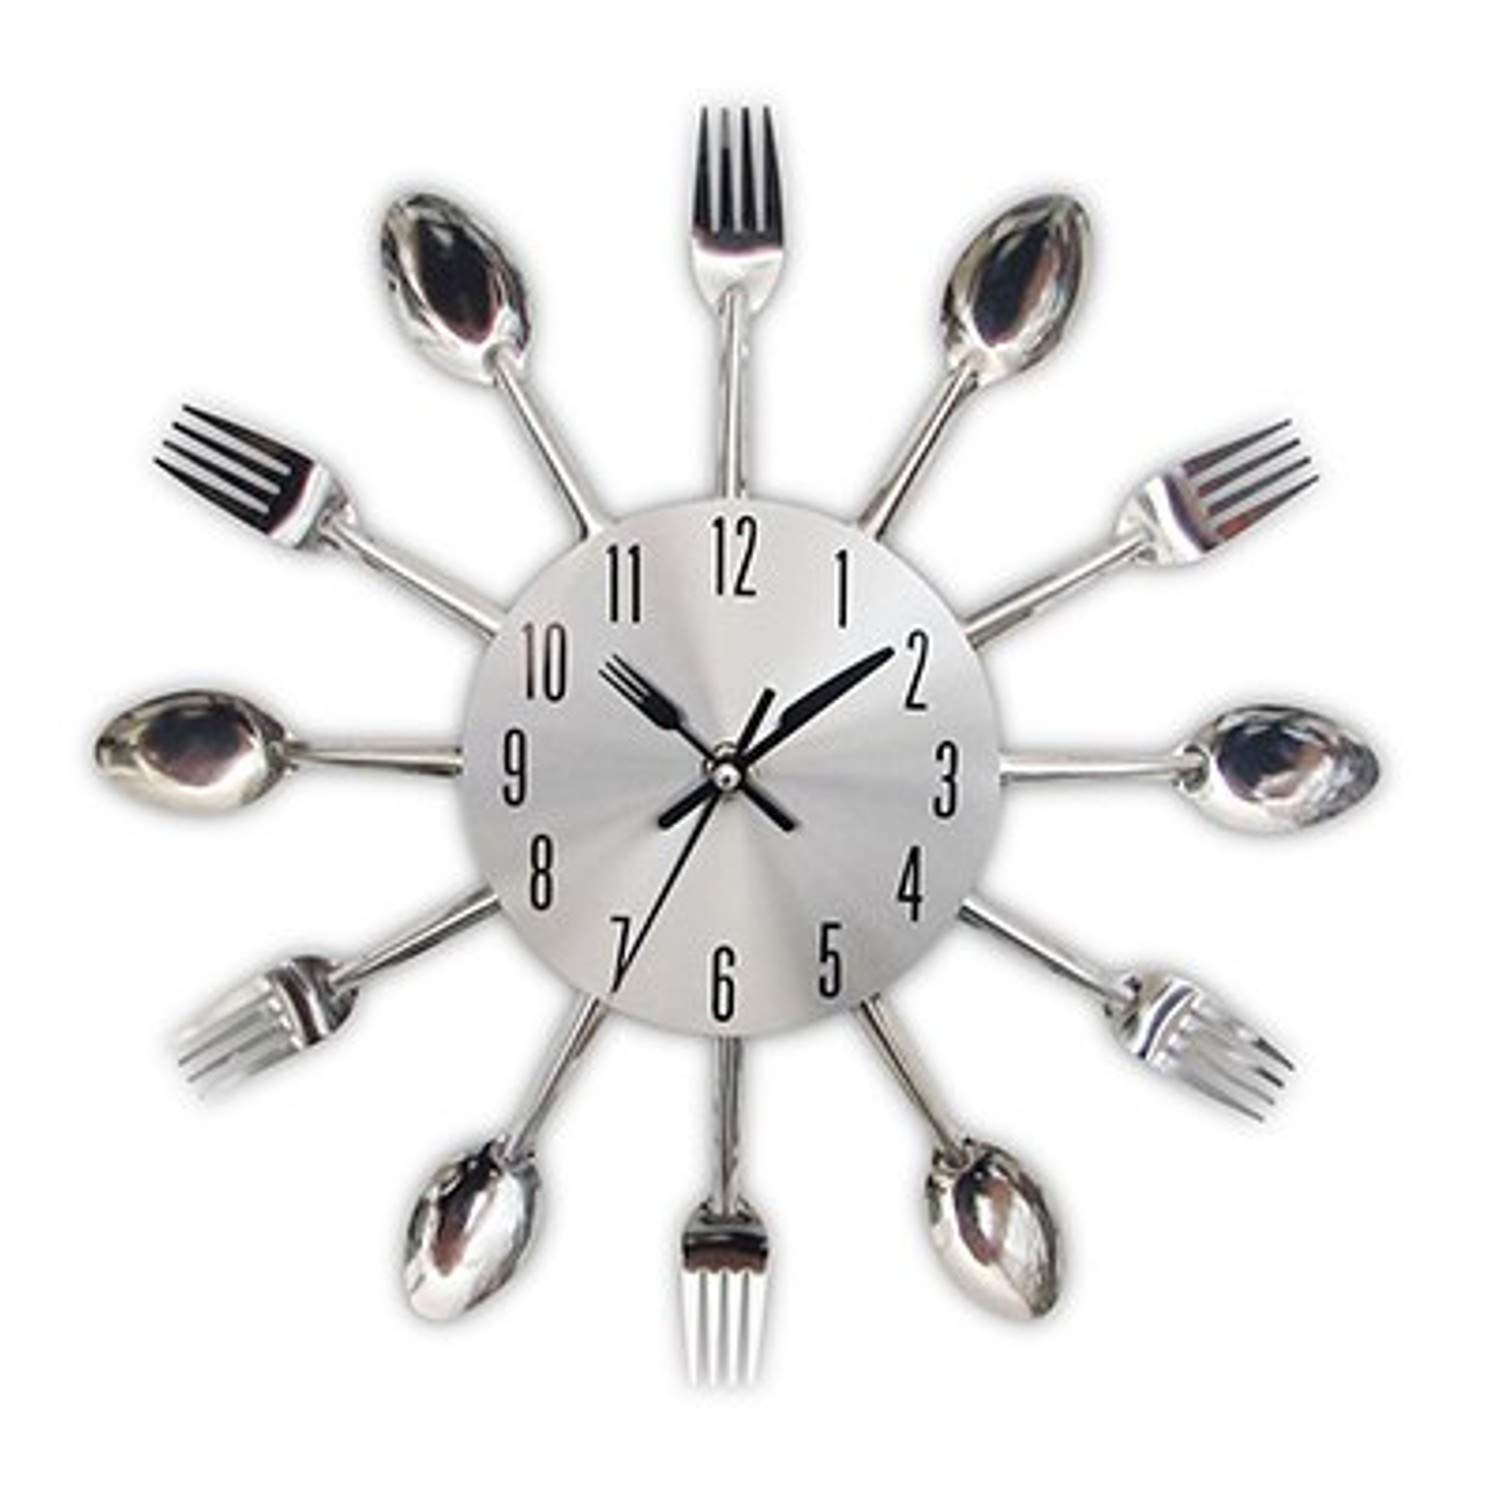 Amazon.com: CHTOP Cutlery Metal Kitchen Wall Clock - Spoon Fork Creative Quartz Wall Mounted Clocks - Modern Design Decorative Horloge Murale (Silver): Home ...